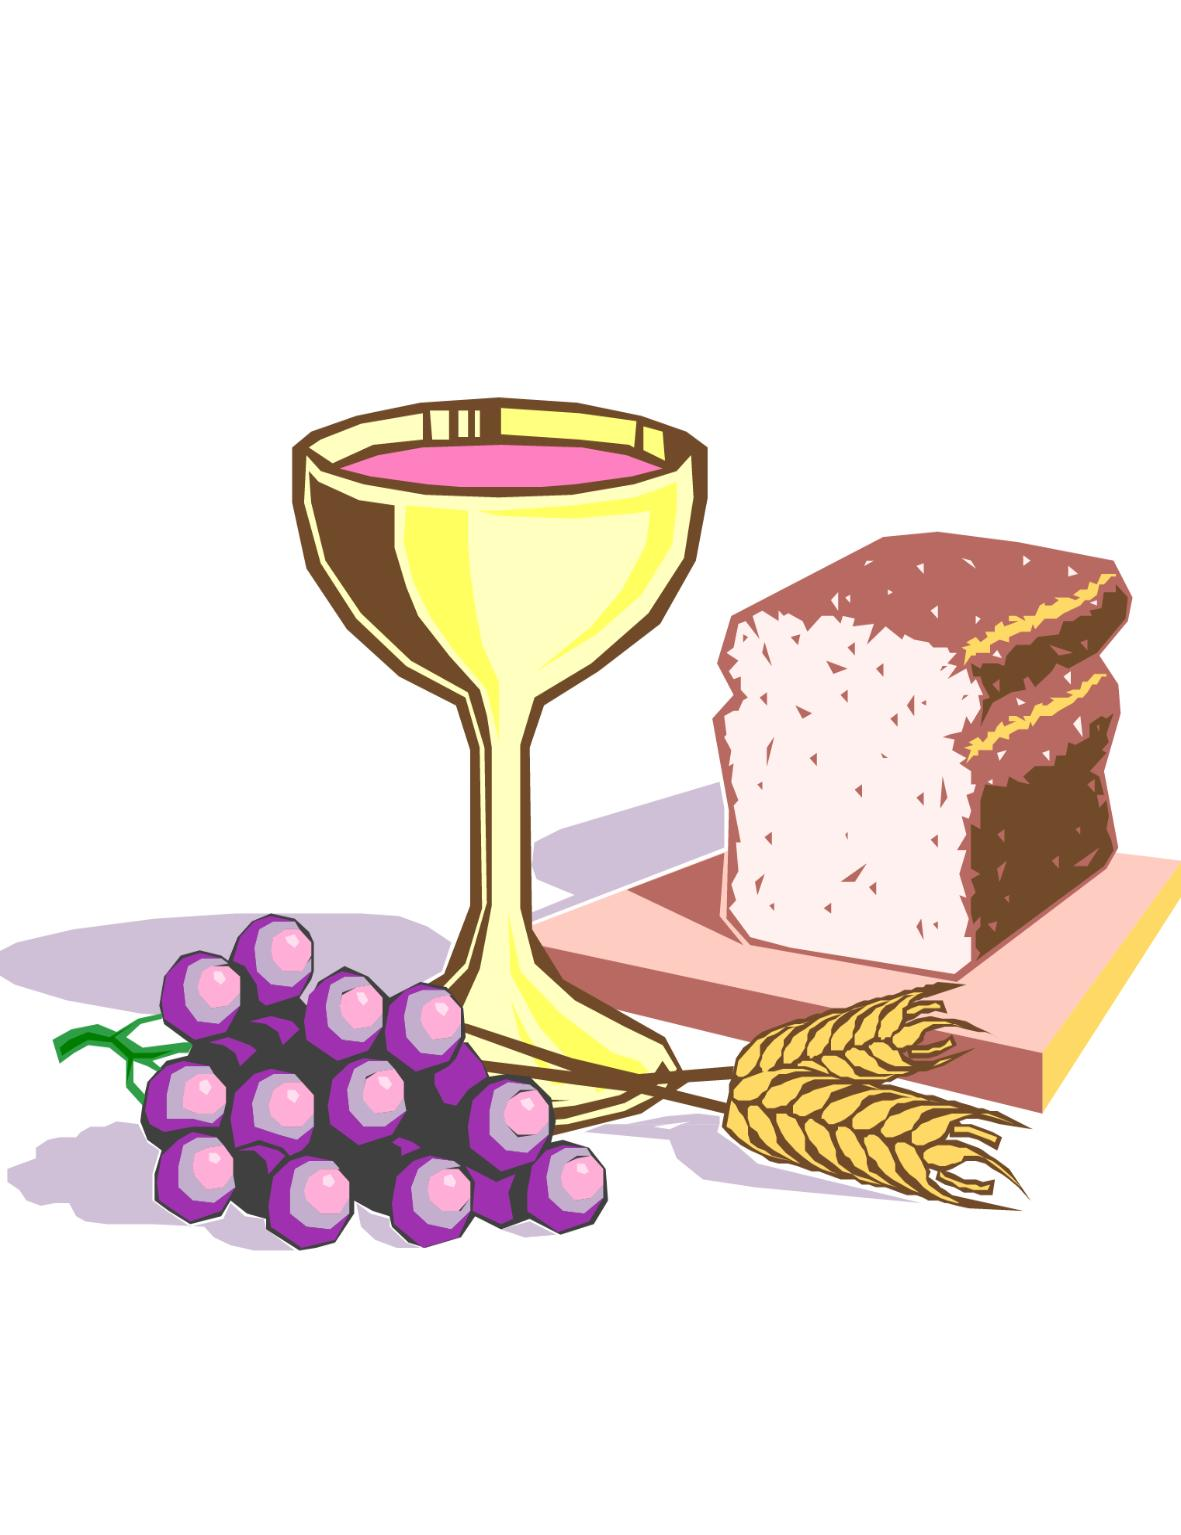 Communion Clip Art Symbols